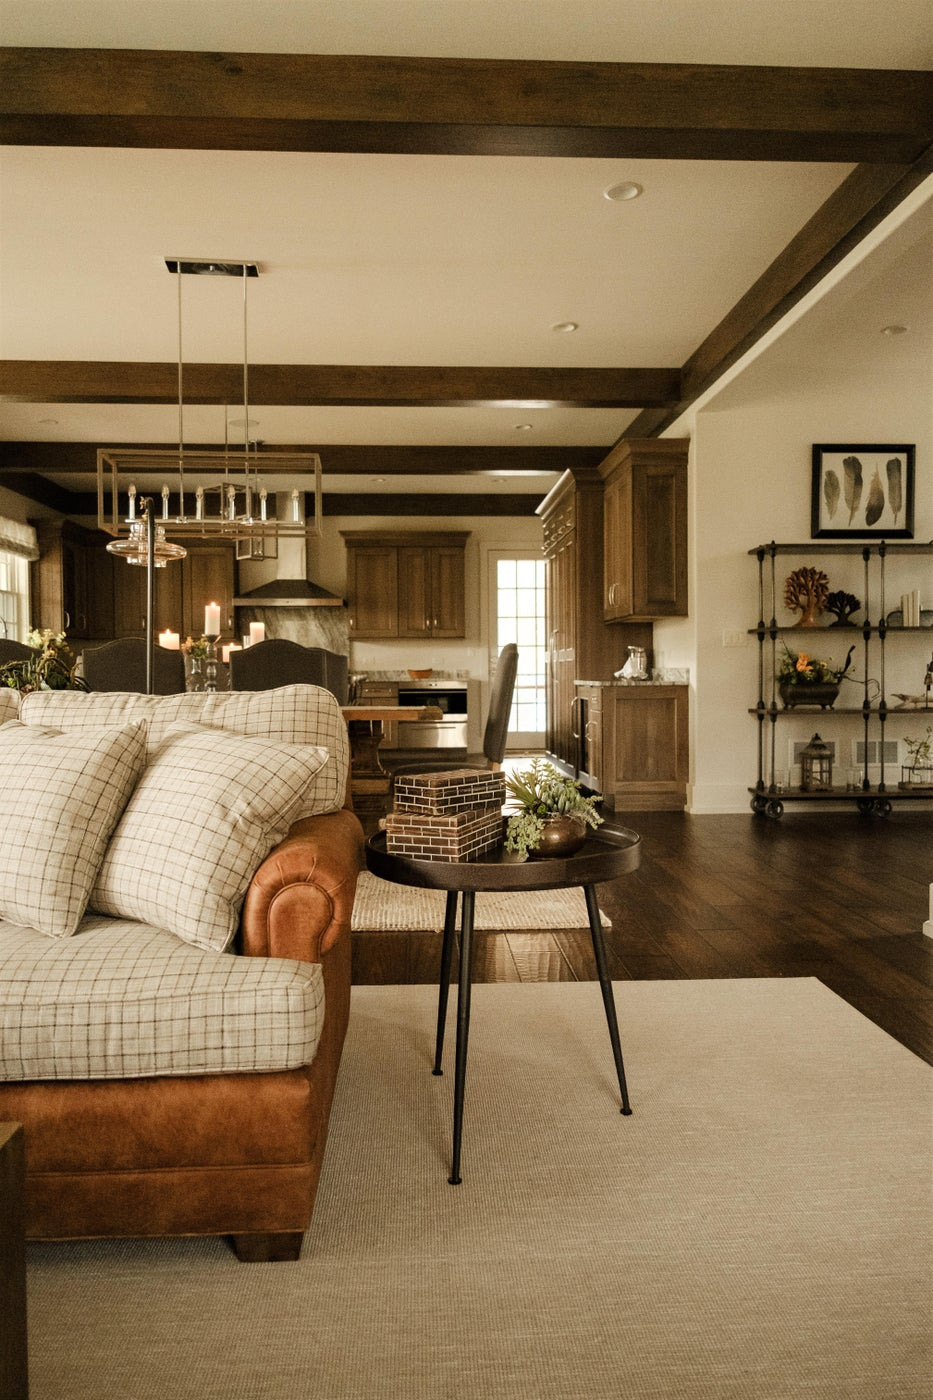 Great room accent table, sectional, rug, shelving, wood floor, beams